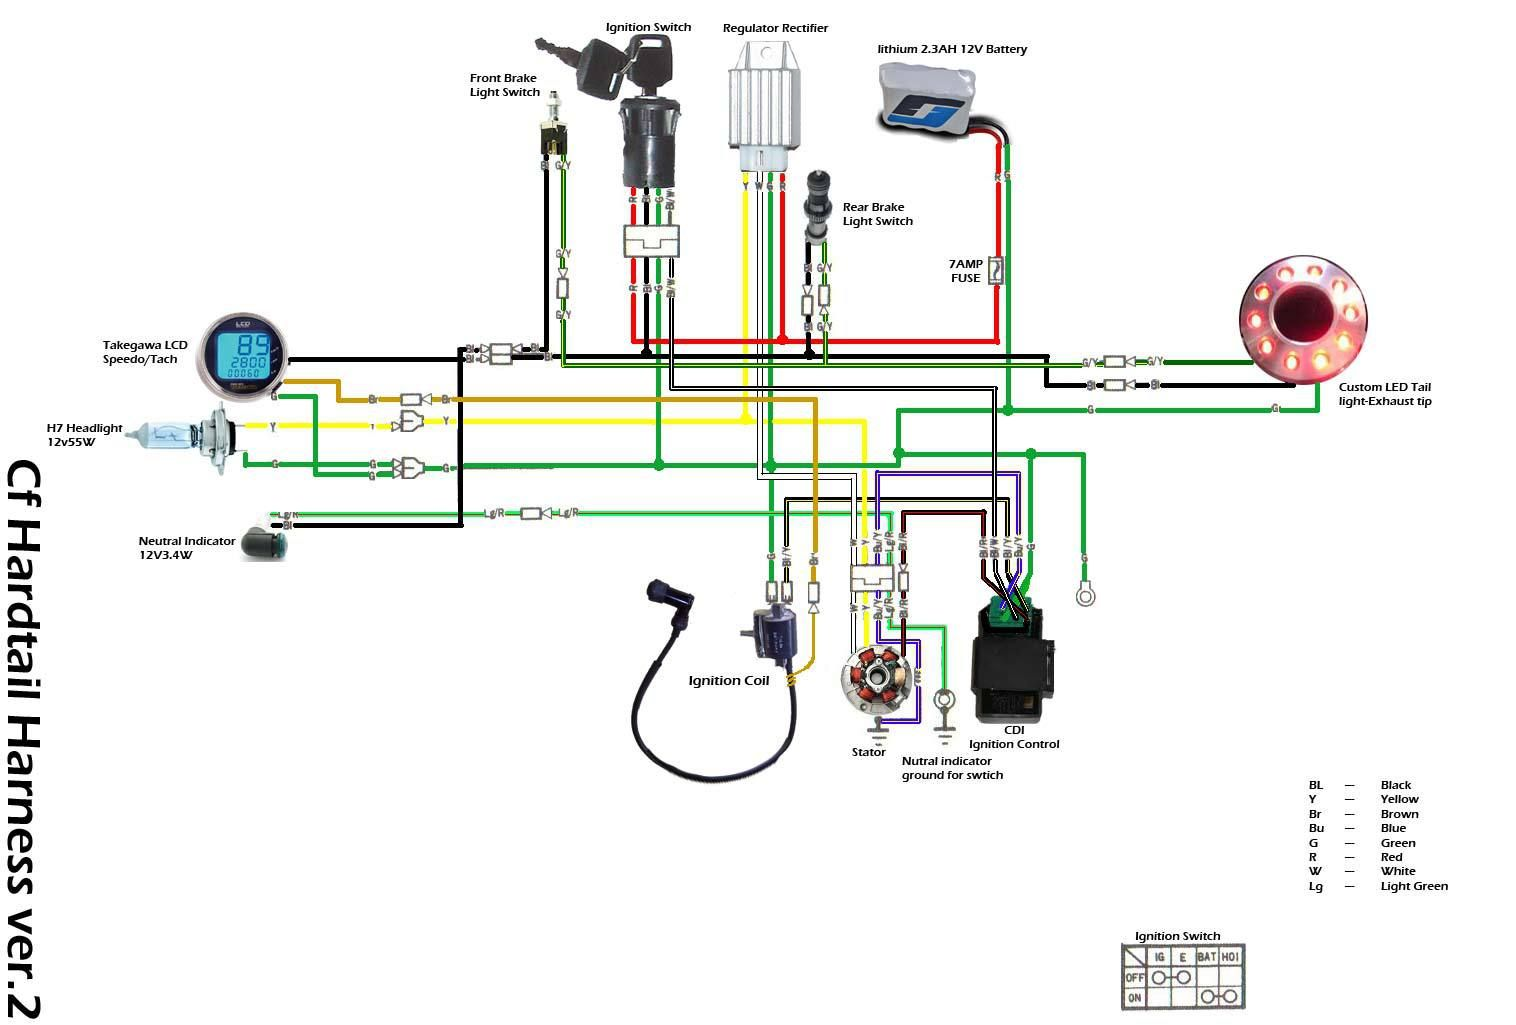 hight resolution of led atv wiring diagram wiring diagram 110cc basic wiring setup atvconnection com atv enthusiast community110cc basic